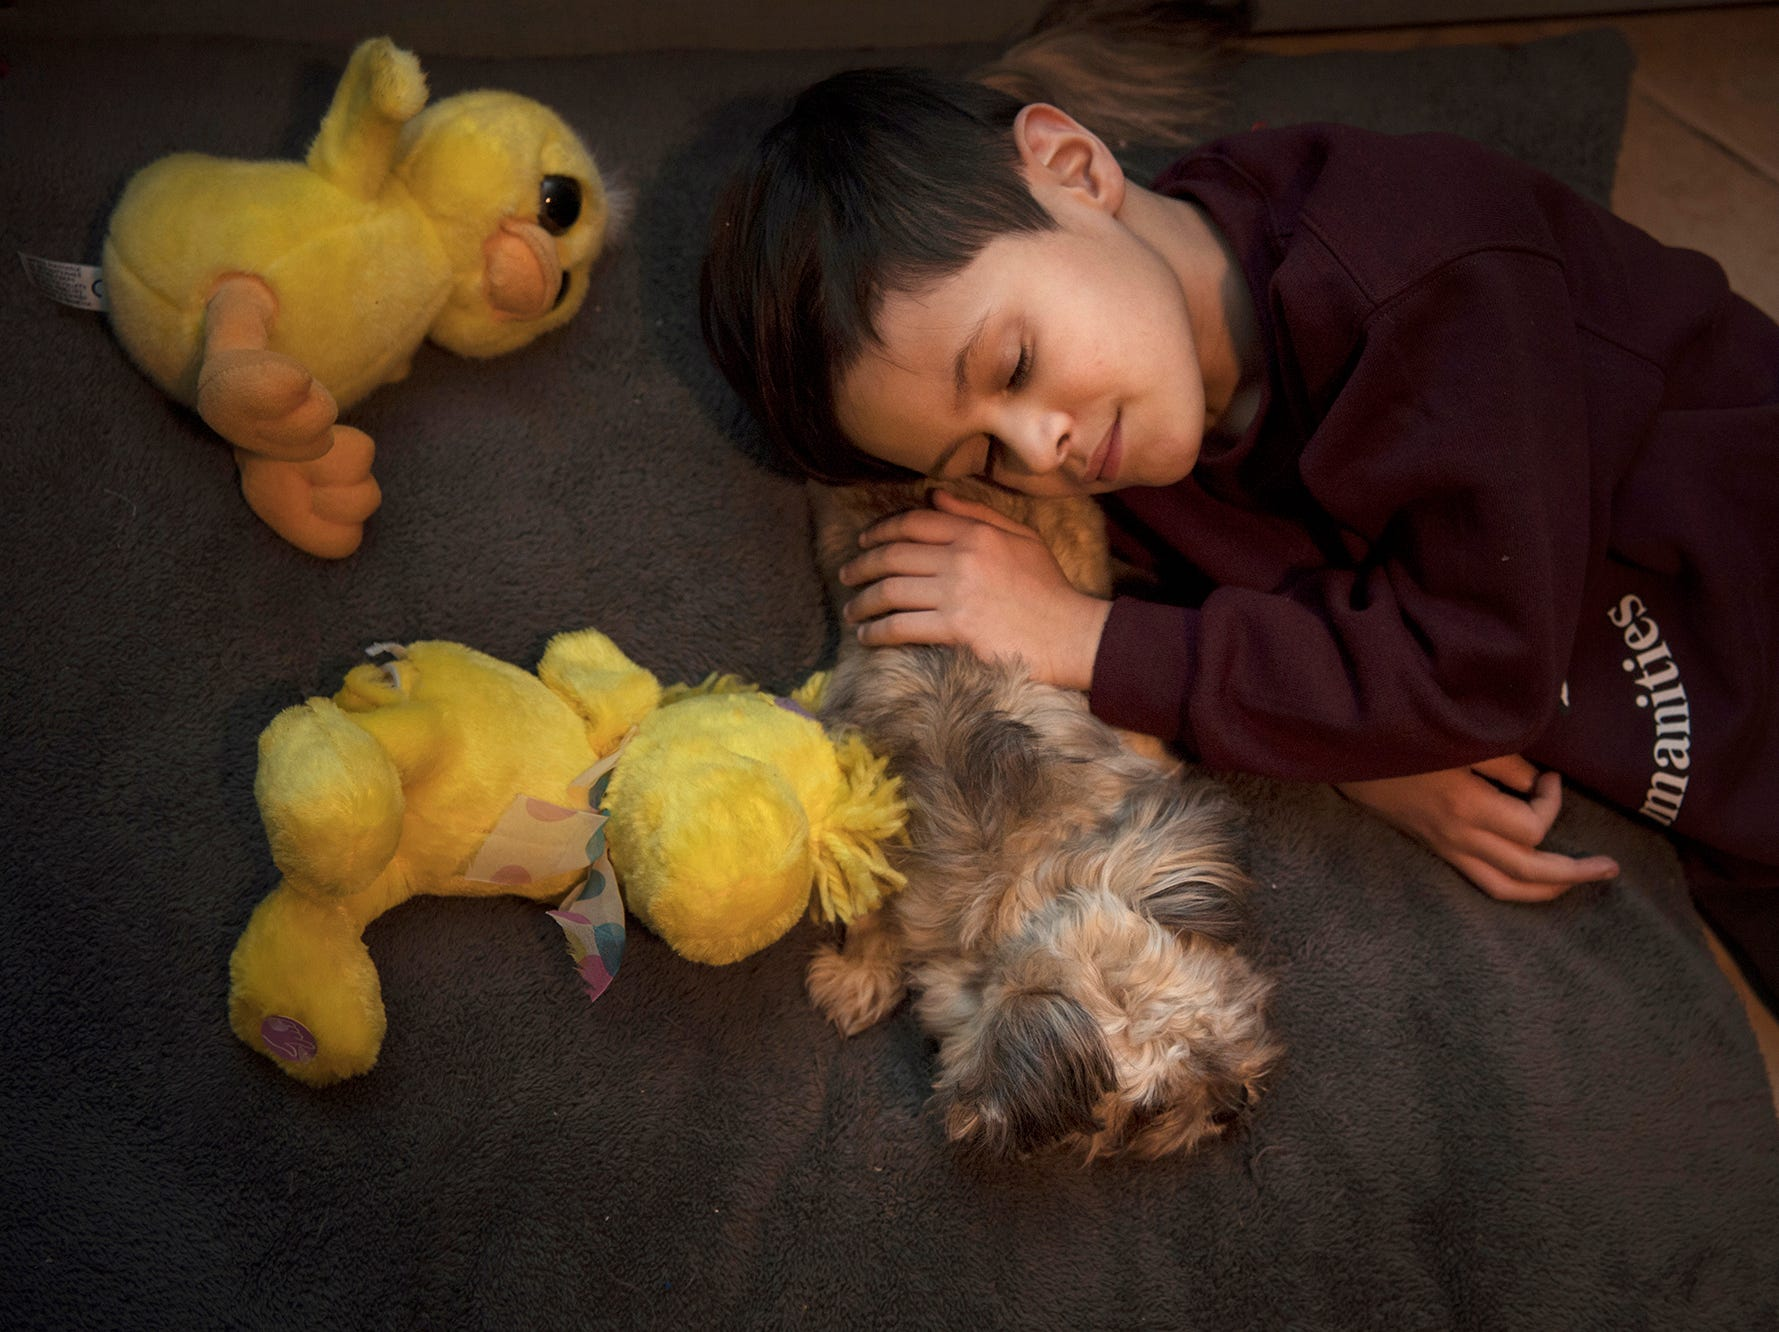 Jacob Rodriguez, 7, with his dog Brownie on Wednesday, January, 24, 2018. Jacob has muscular dystrophy, his dog went missing and was recently found and returned to him.